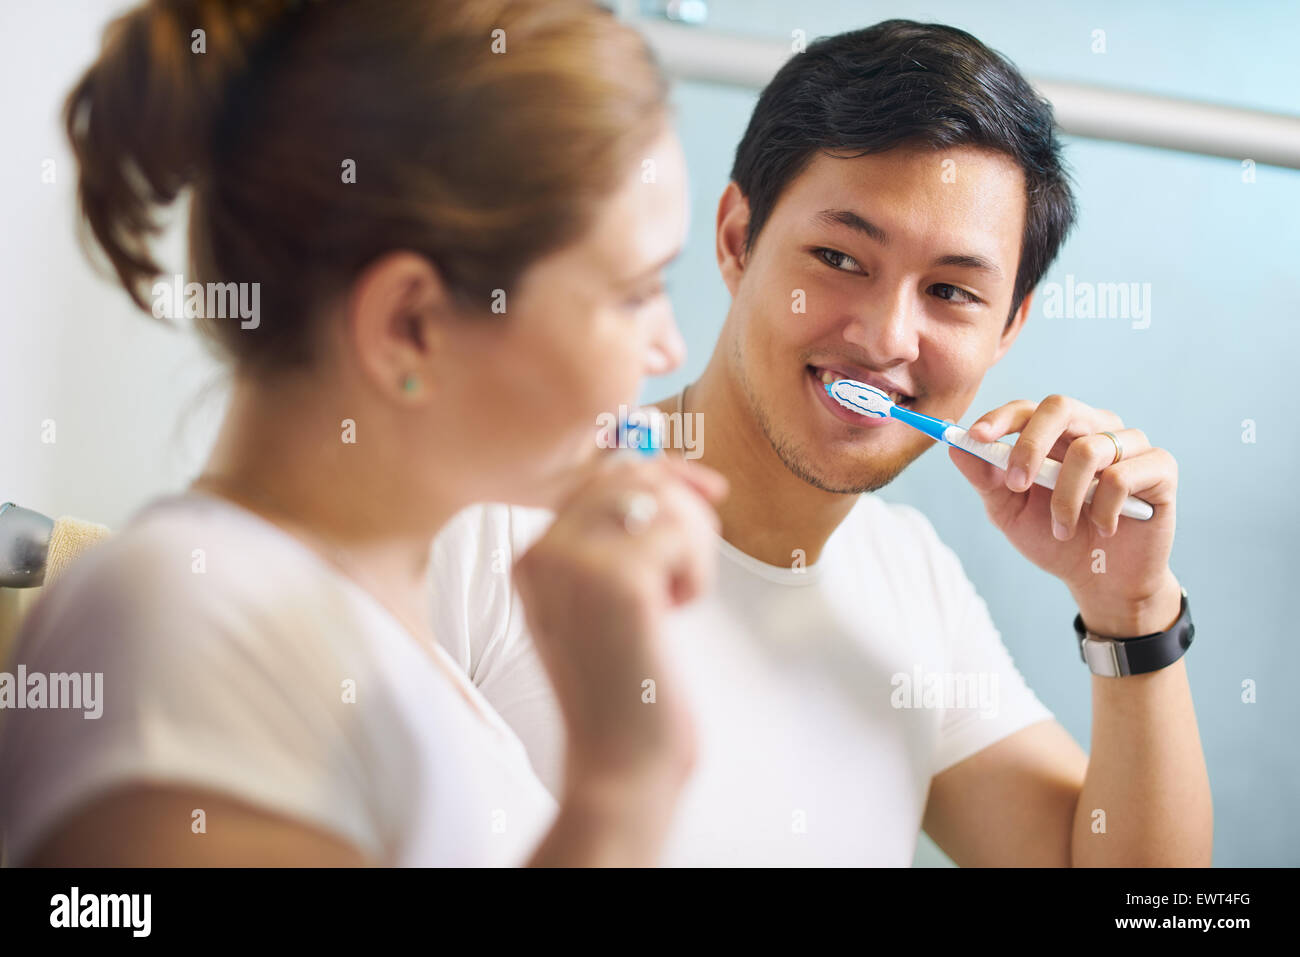 Young couple living together, washing teeth in bathroom in the morning. The woman looks happily at her boyfriend. - Stock Image